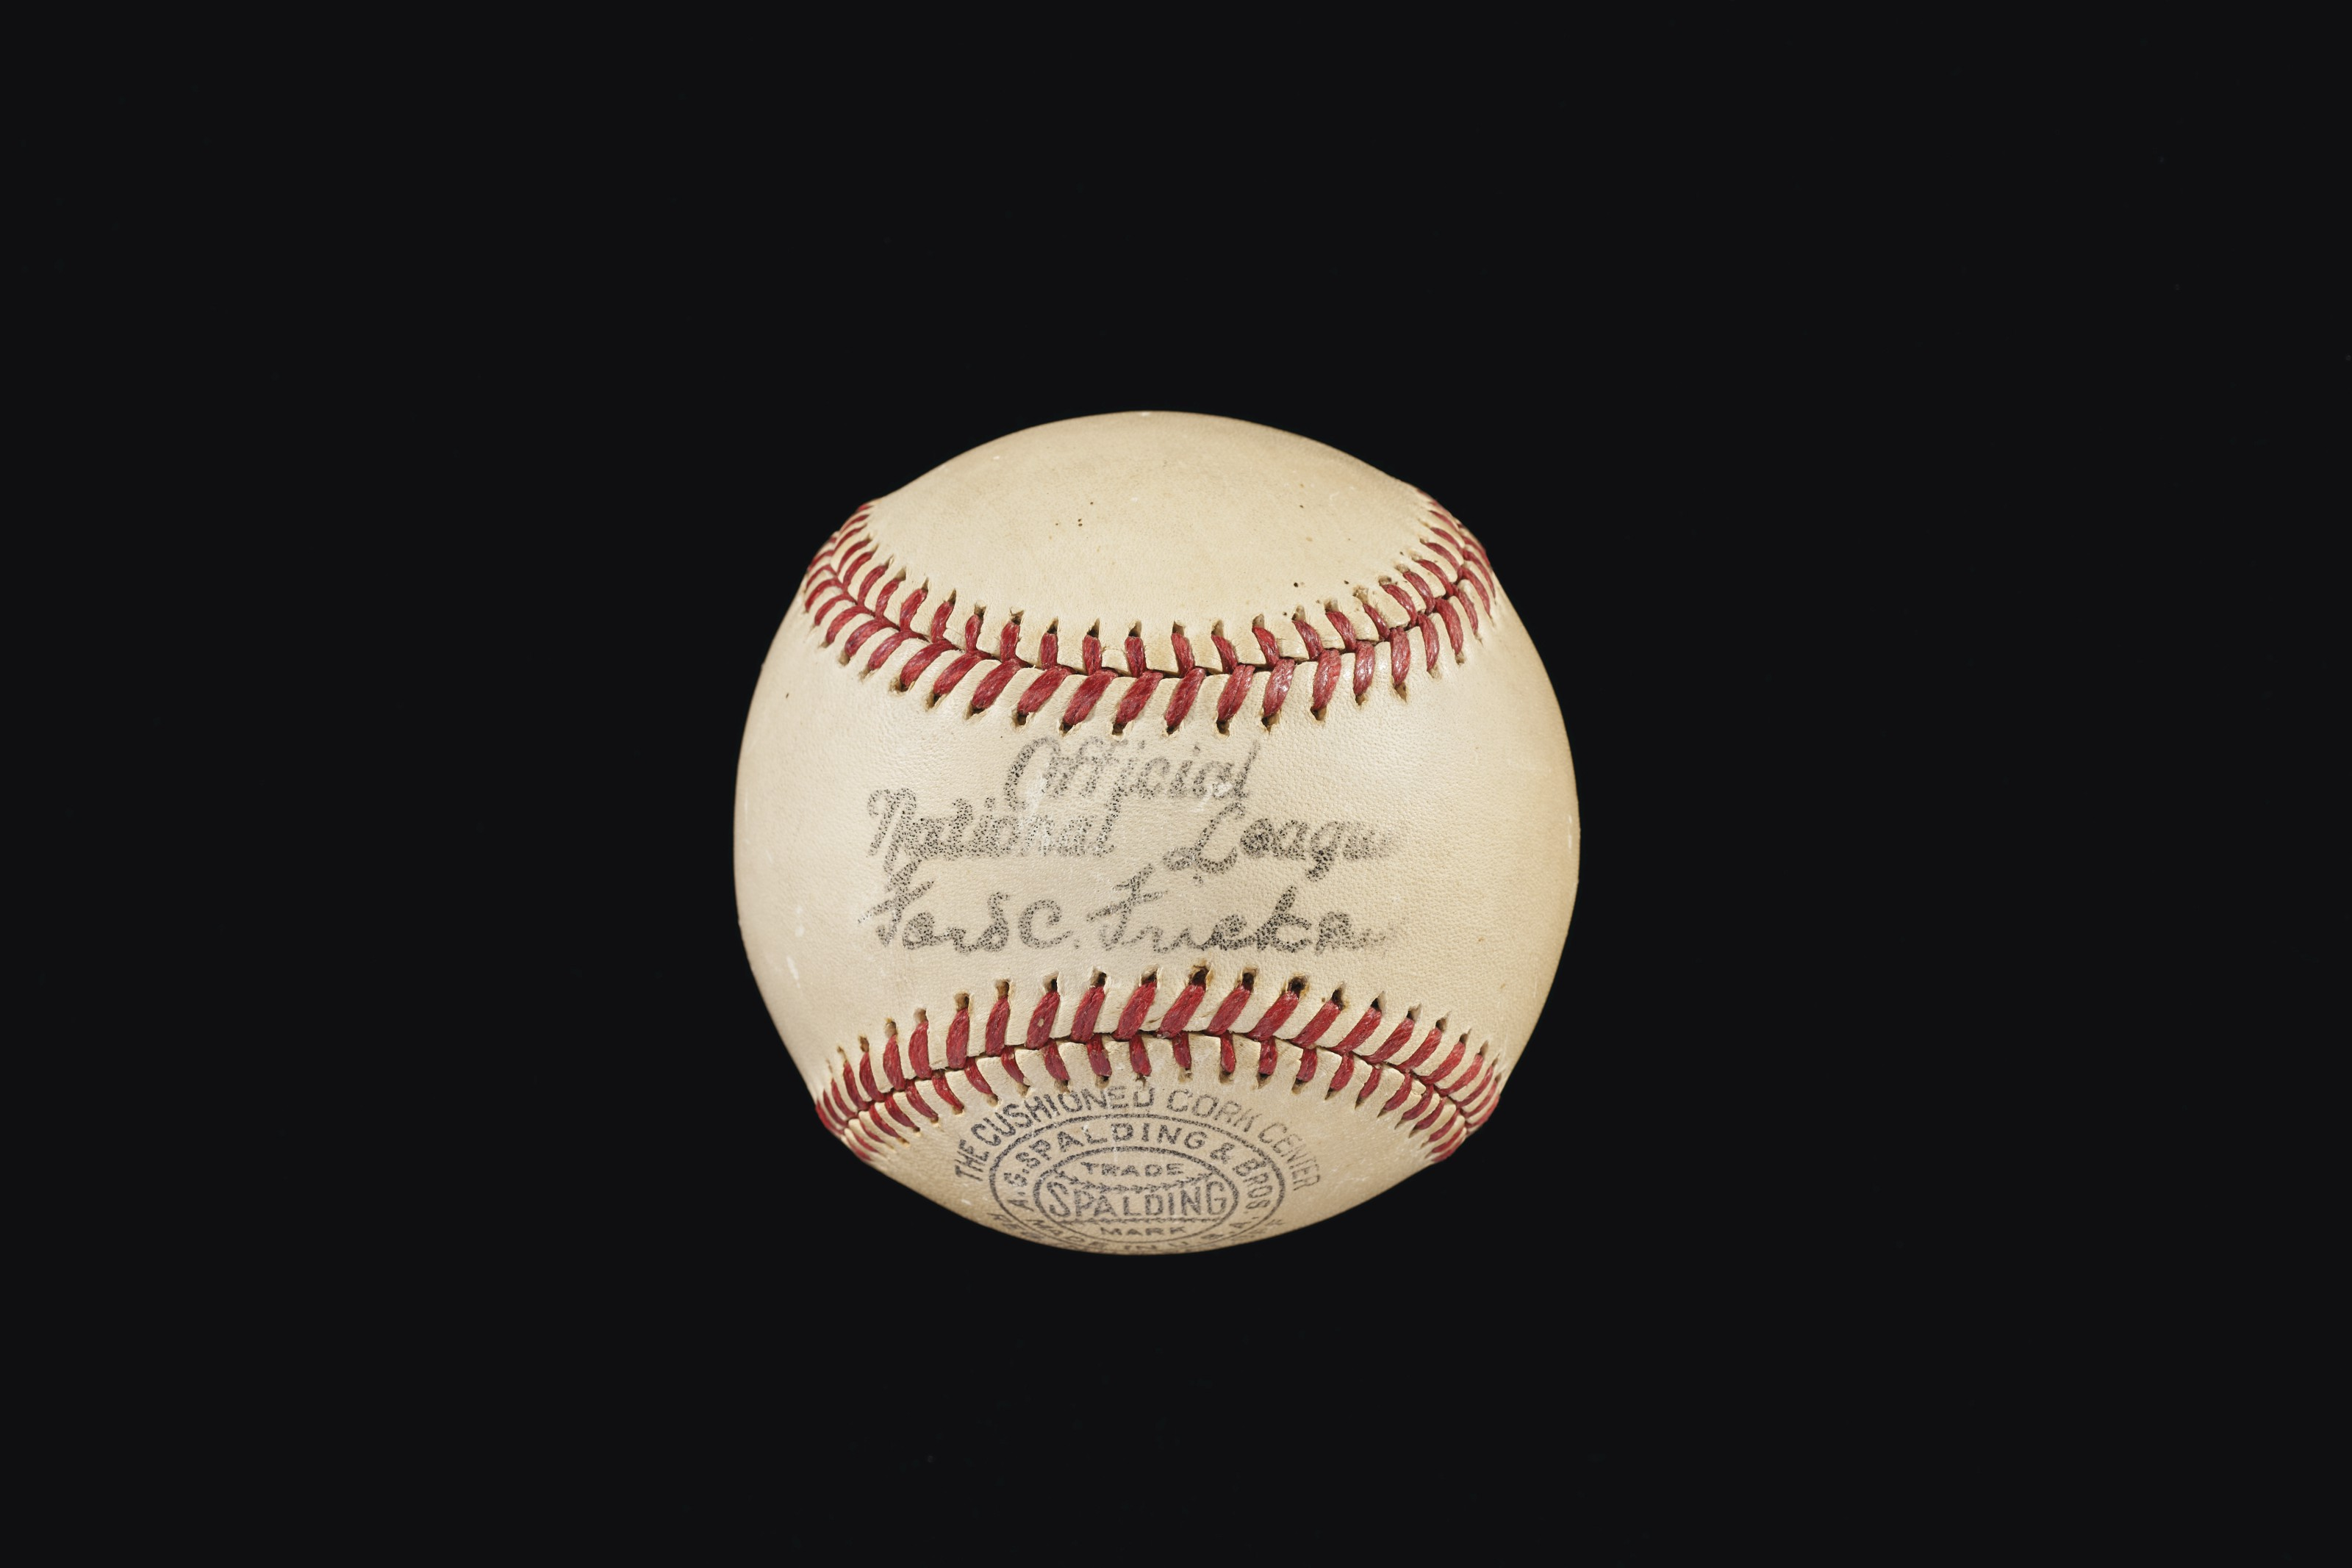 Rare G.C. Alexander Single Signed Ball (PSA/DNA 8 NM-MT)